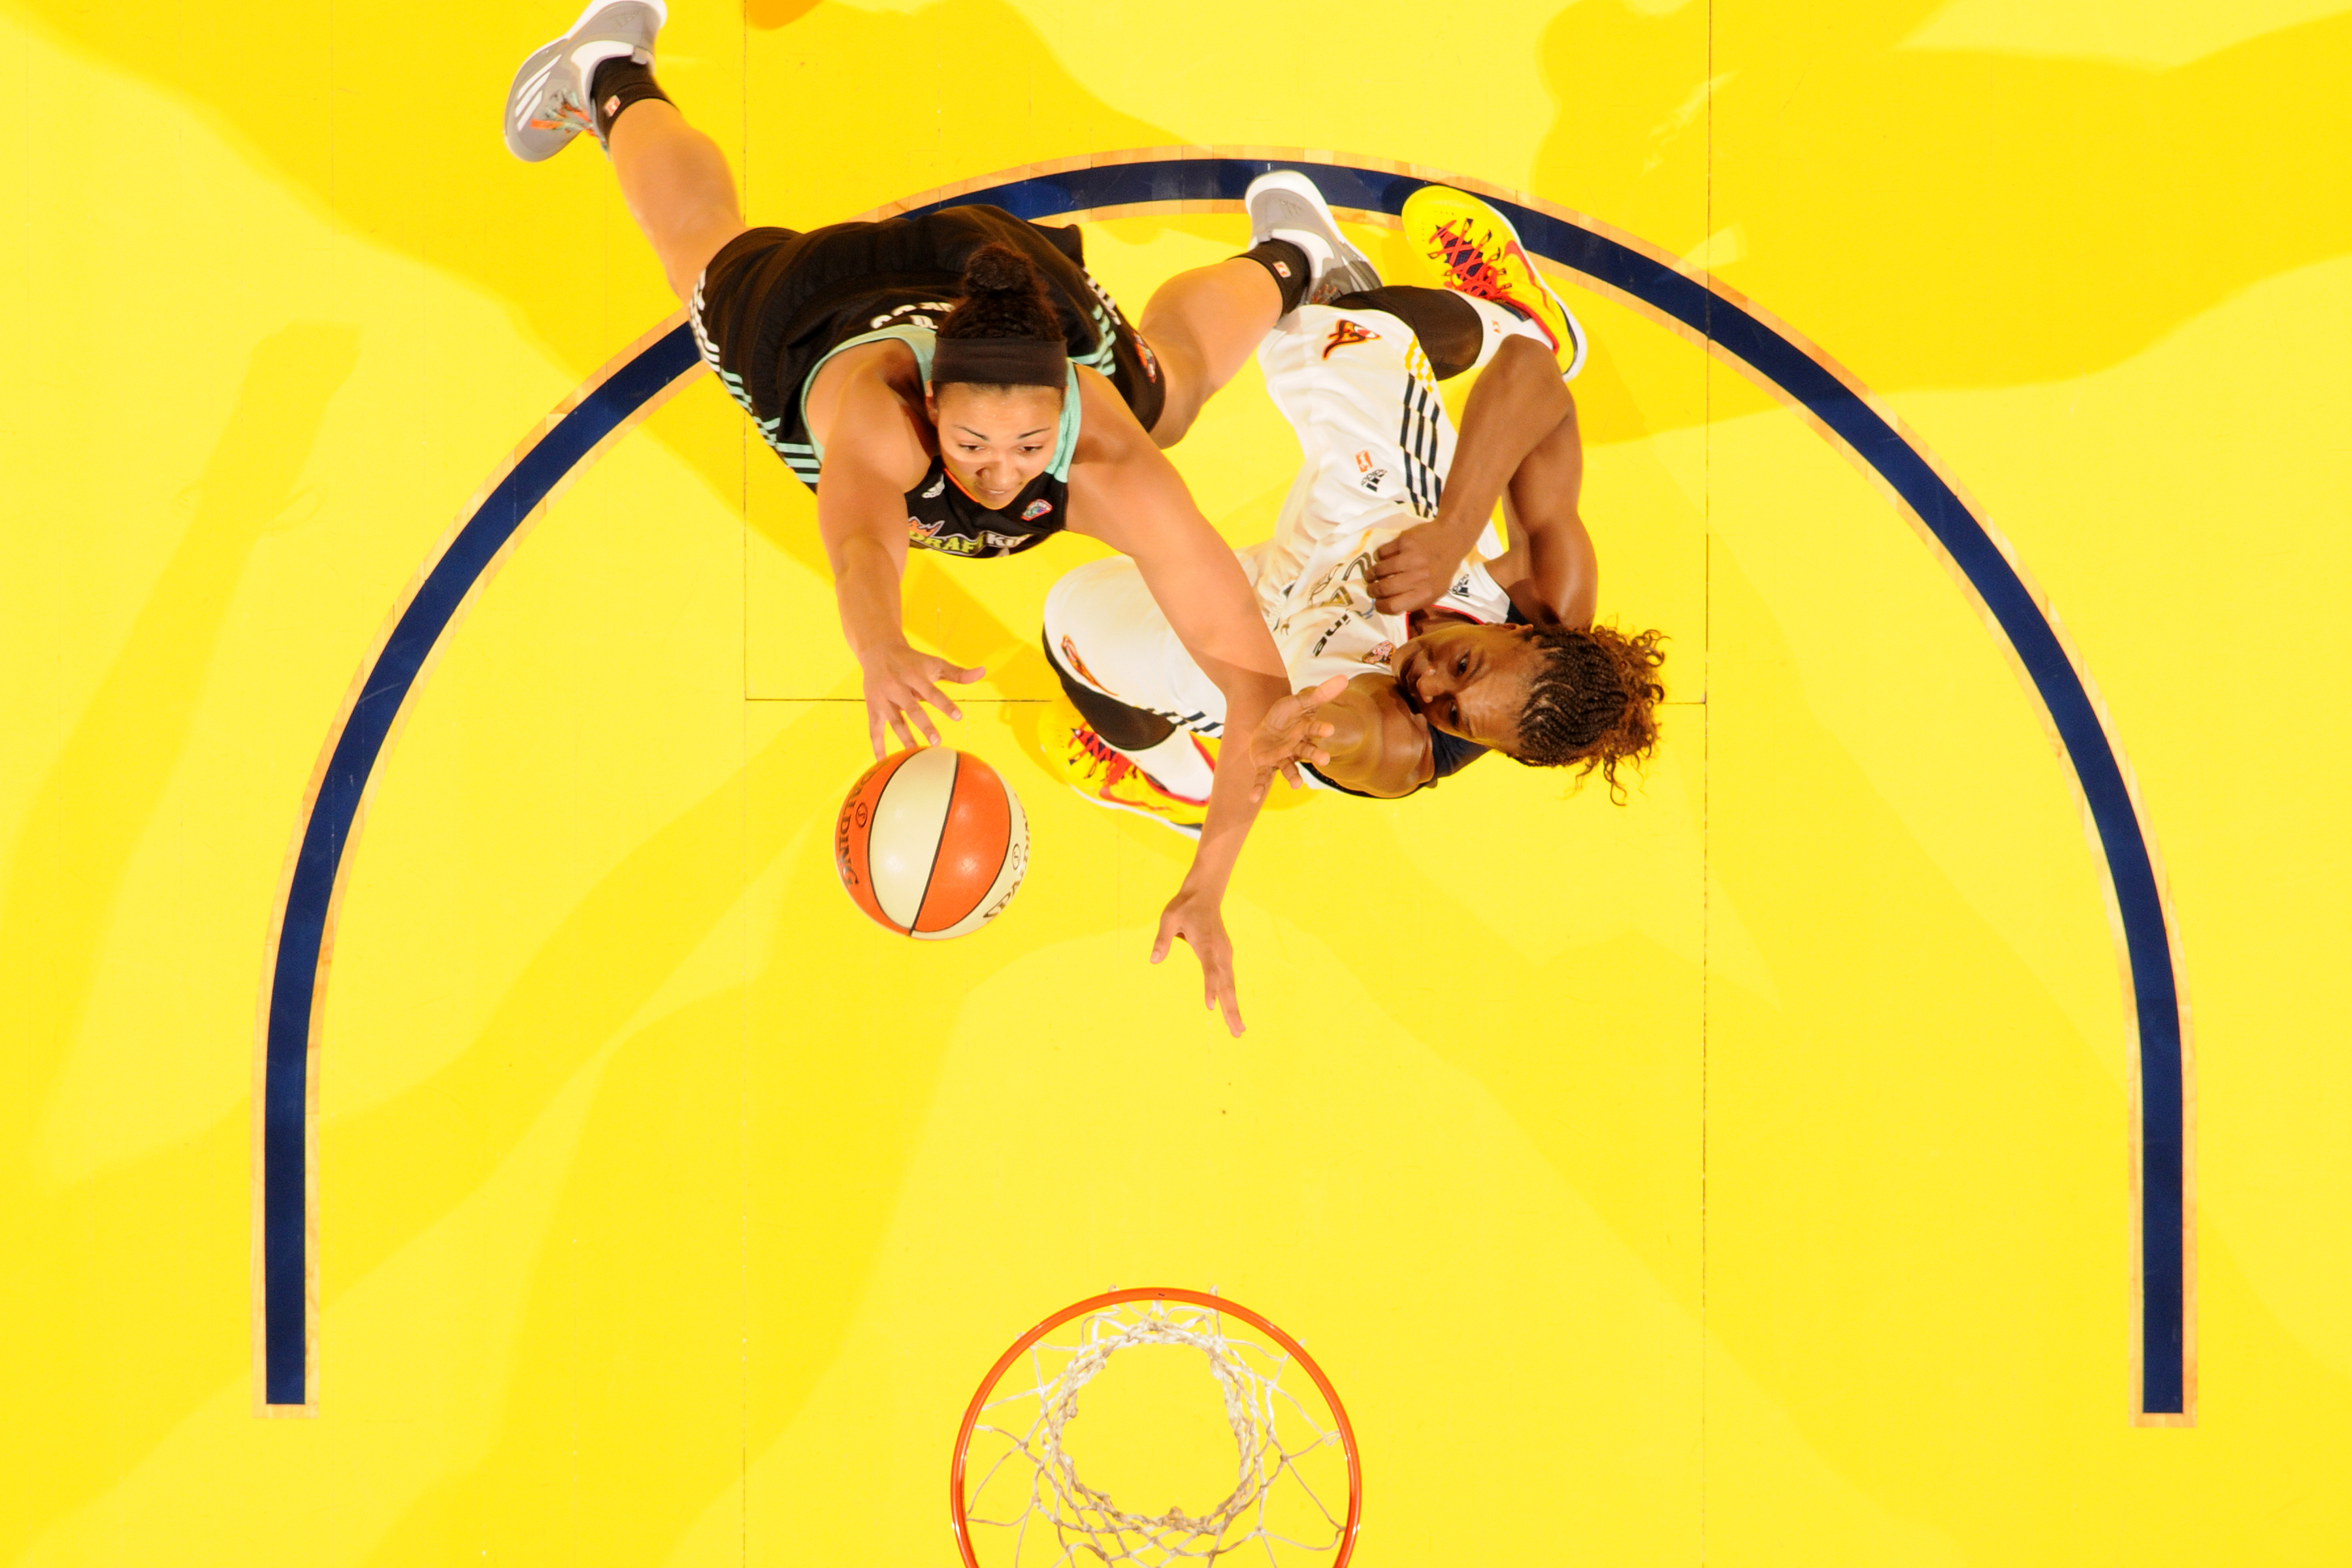 INDIANAPOLIS - SEPTEMBER 27:  Kiah Stokes #41 of the New York Liberty drives to the basket against Tamika Catchings #24 of the Indiana Fever in Game Two of the WNBA Eastern Conference Finals at Bankers Life Fieldhouse on September 27, 2015 in Indianapolis